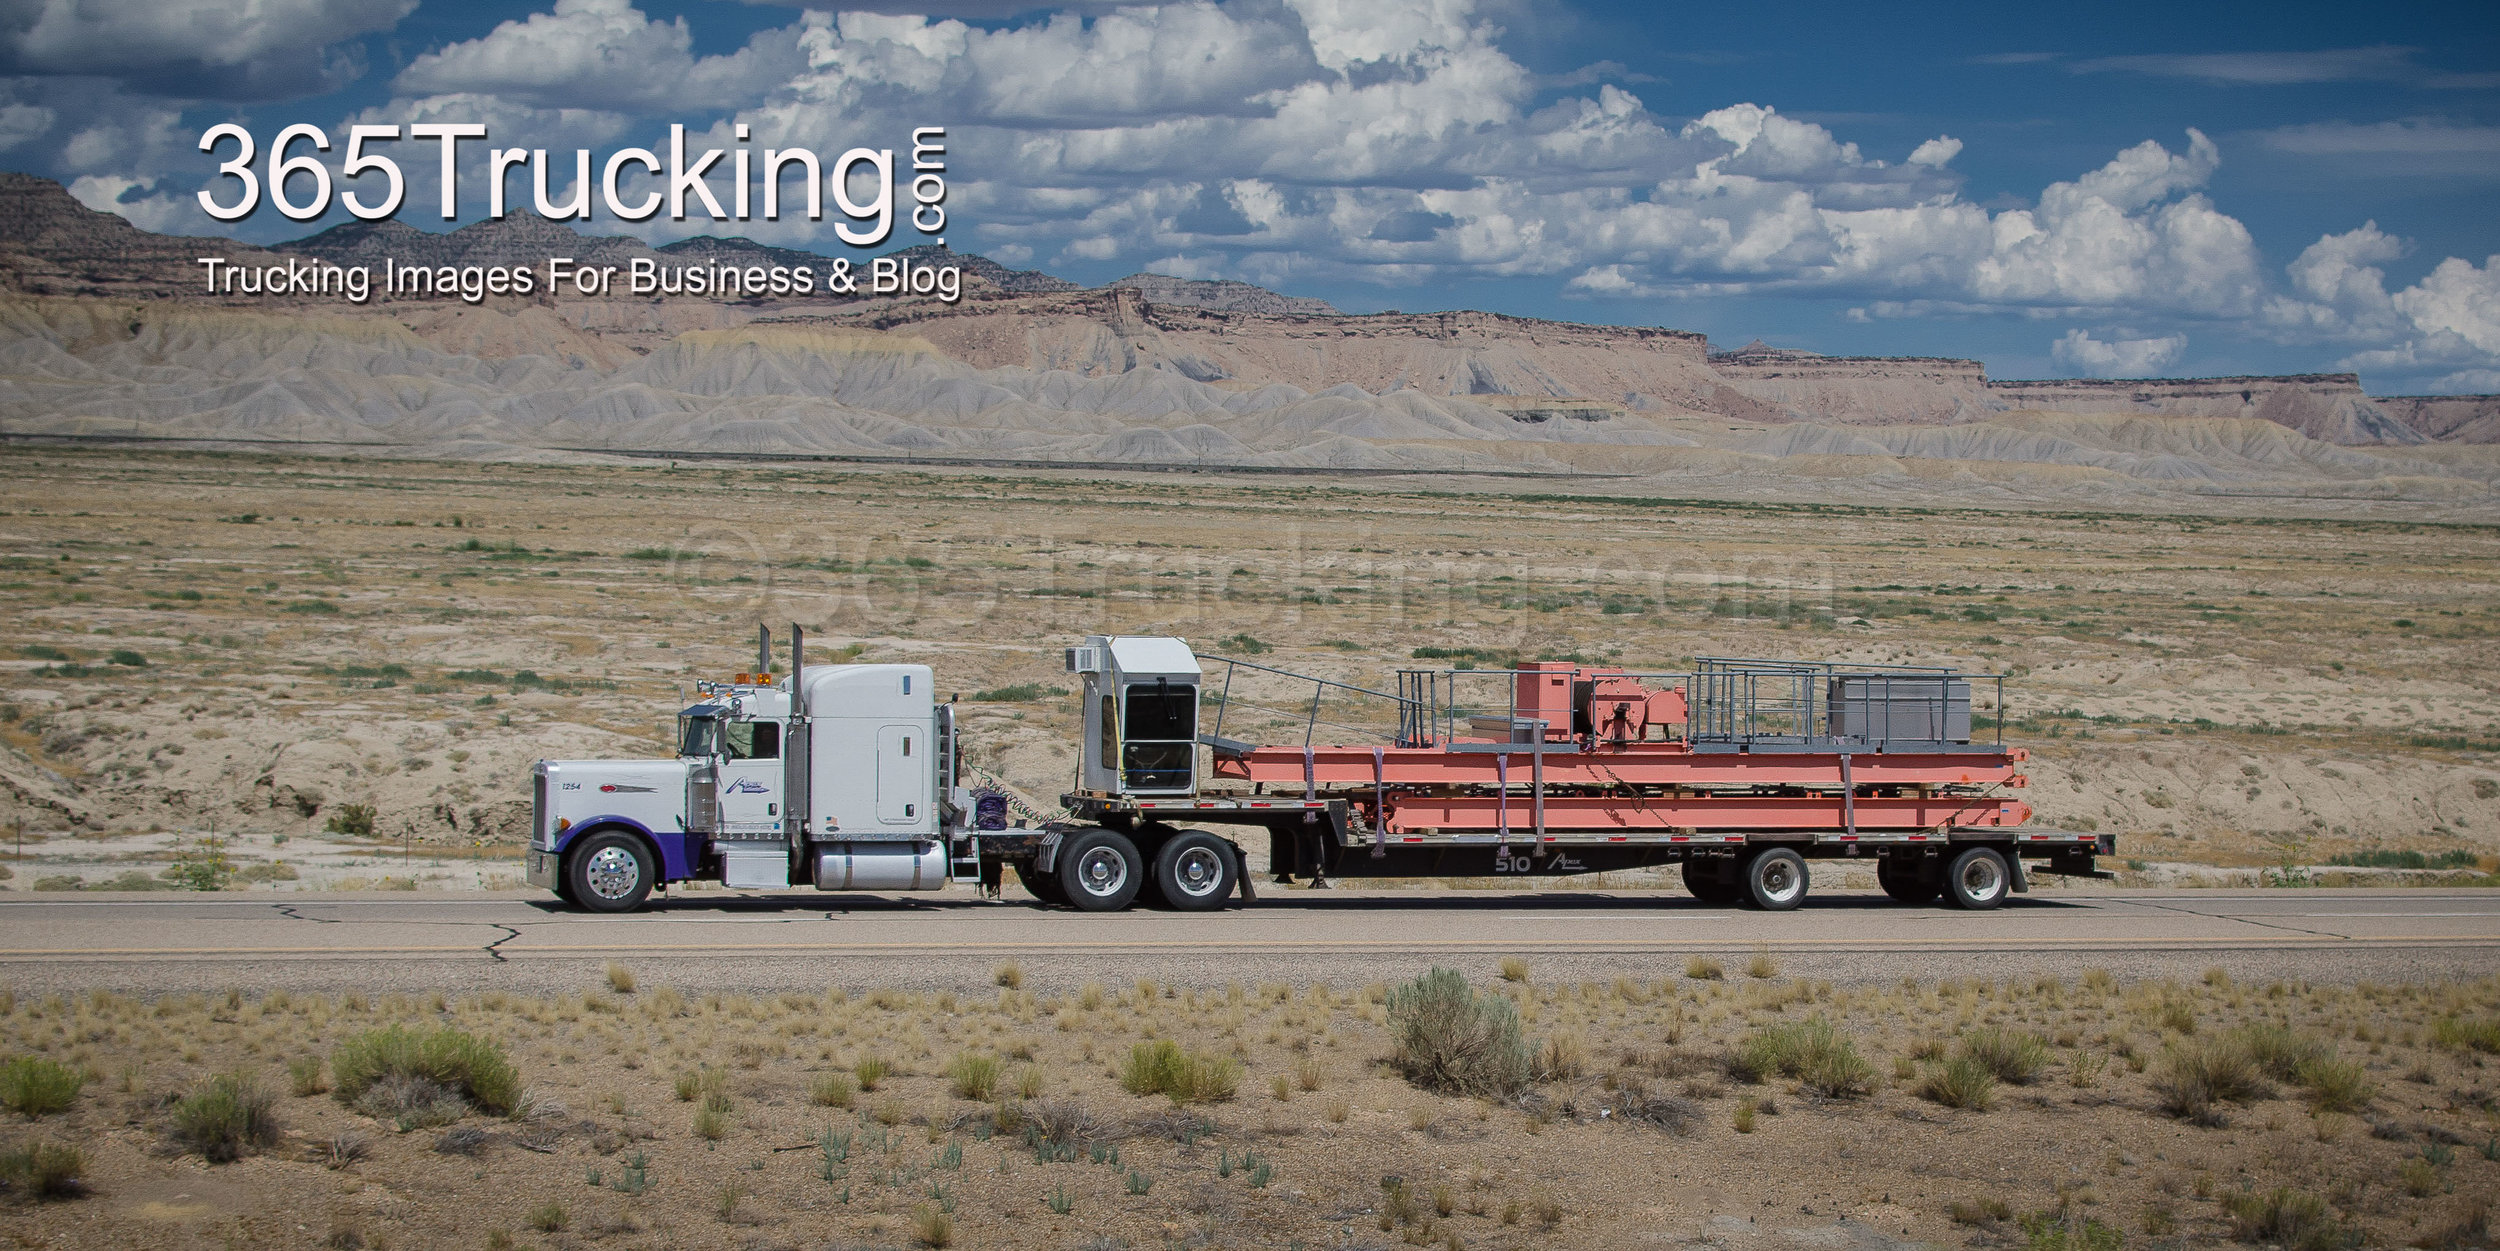 All Truck Images provided by   truckstockimages.com   To see more, Click   HERE